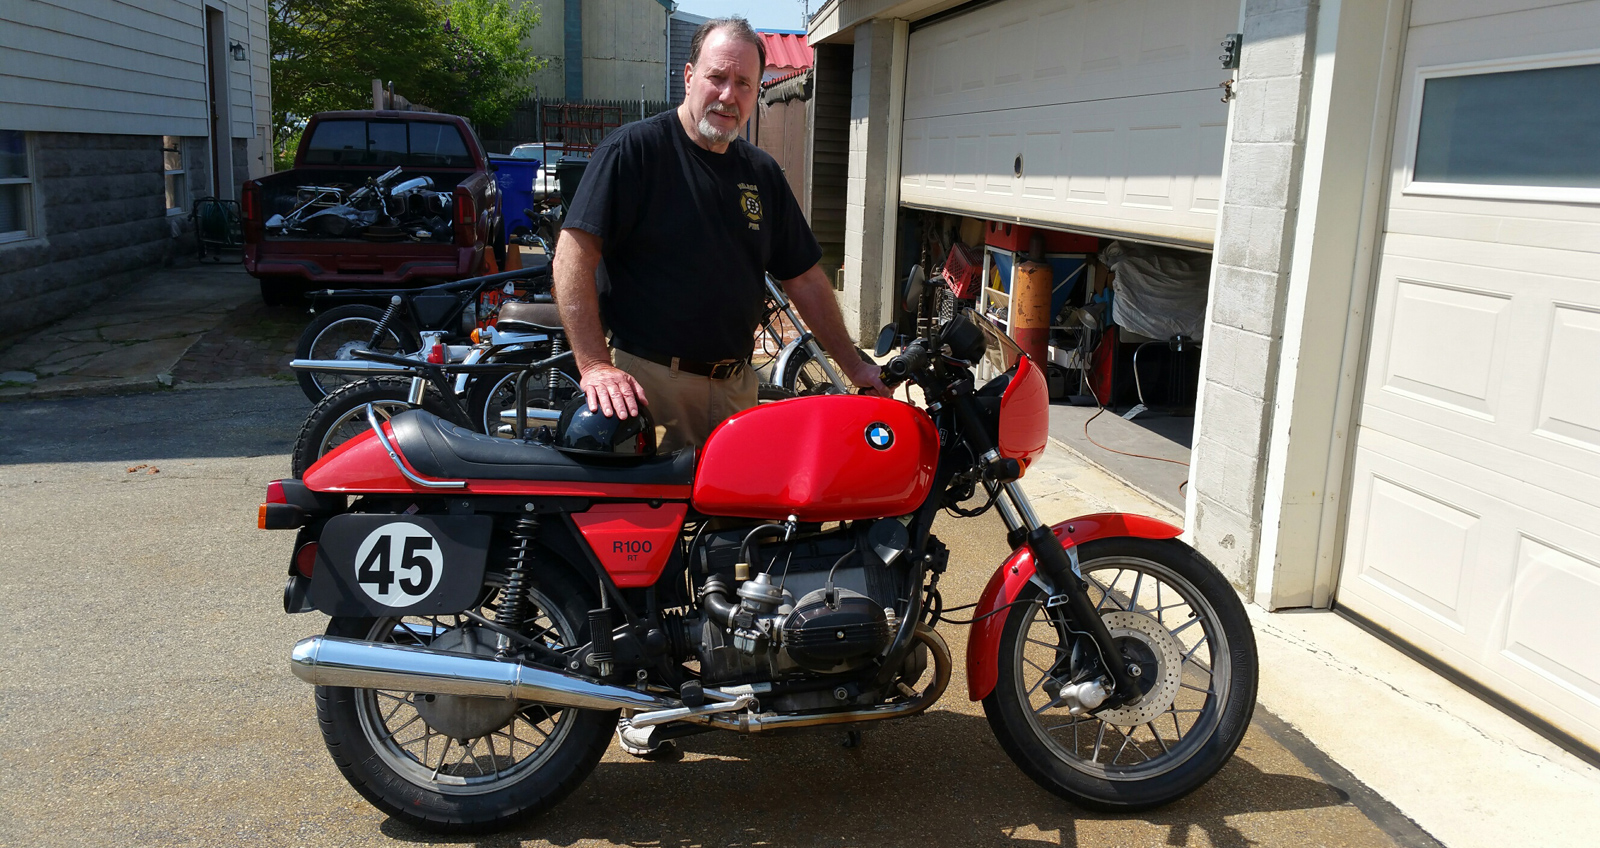 Vintage motorcycle stated values & appraisals by experienced professionals